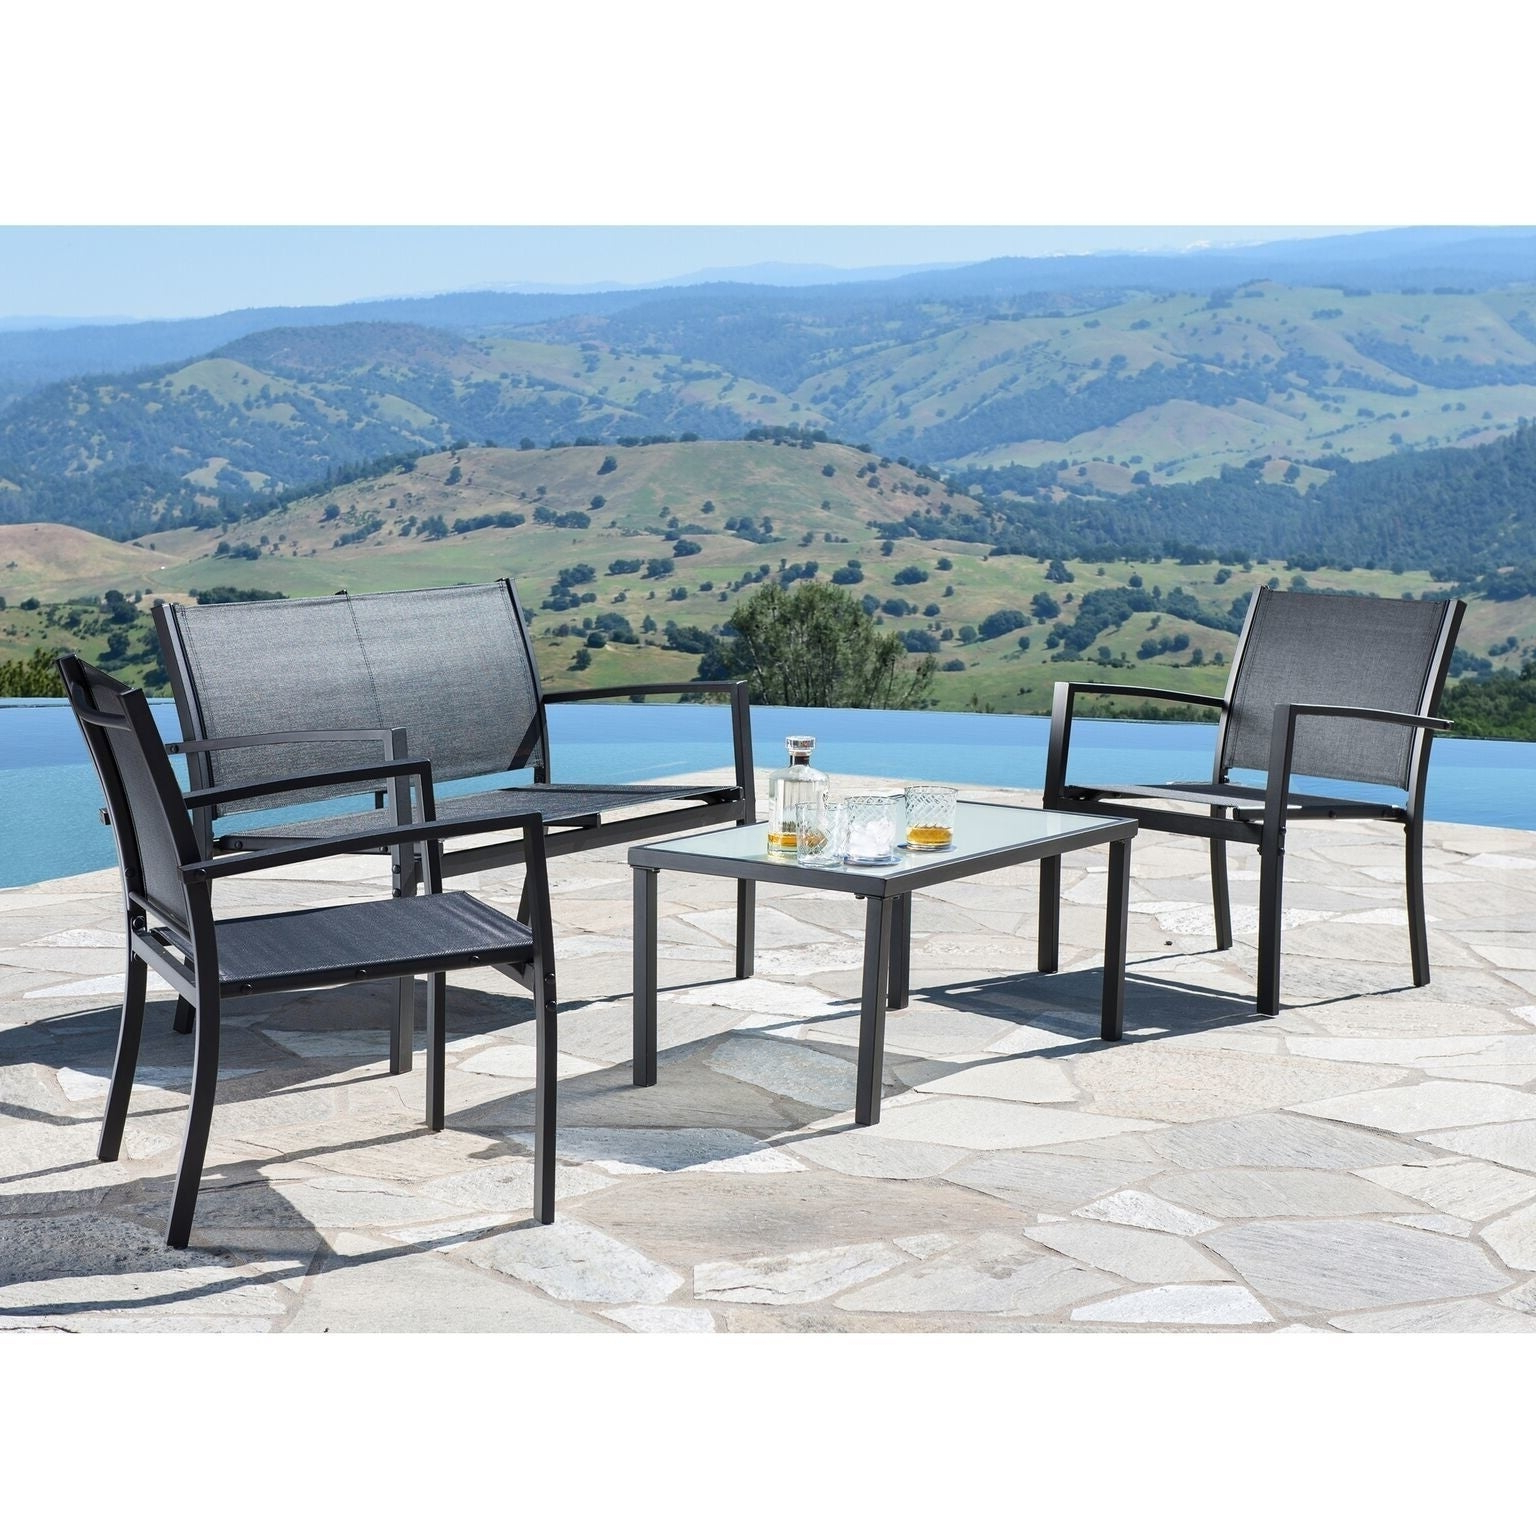 Famous Salton Outdoor Aluminum Chaise Lounges With 4th Of July Outdoor Furniture Sale 2019 – Bestproductlists (View 24 of 25)